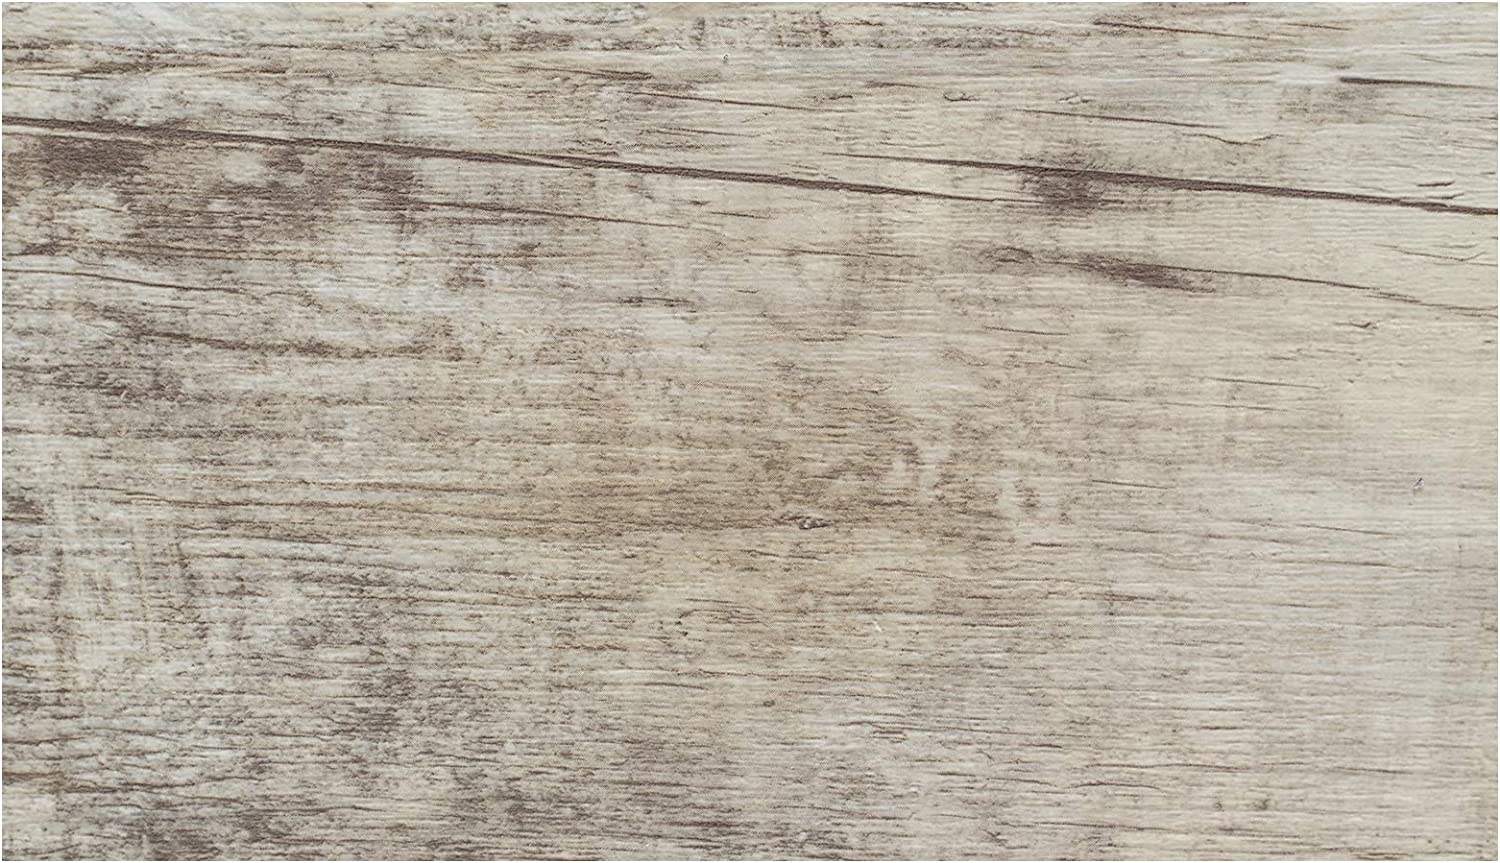 Elegant Vinyl Plank Flooring - Interlocking Floating Planks in Zion – 4in x  4in Sample - from The Ascent Collection by Finesse Floors